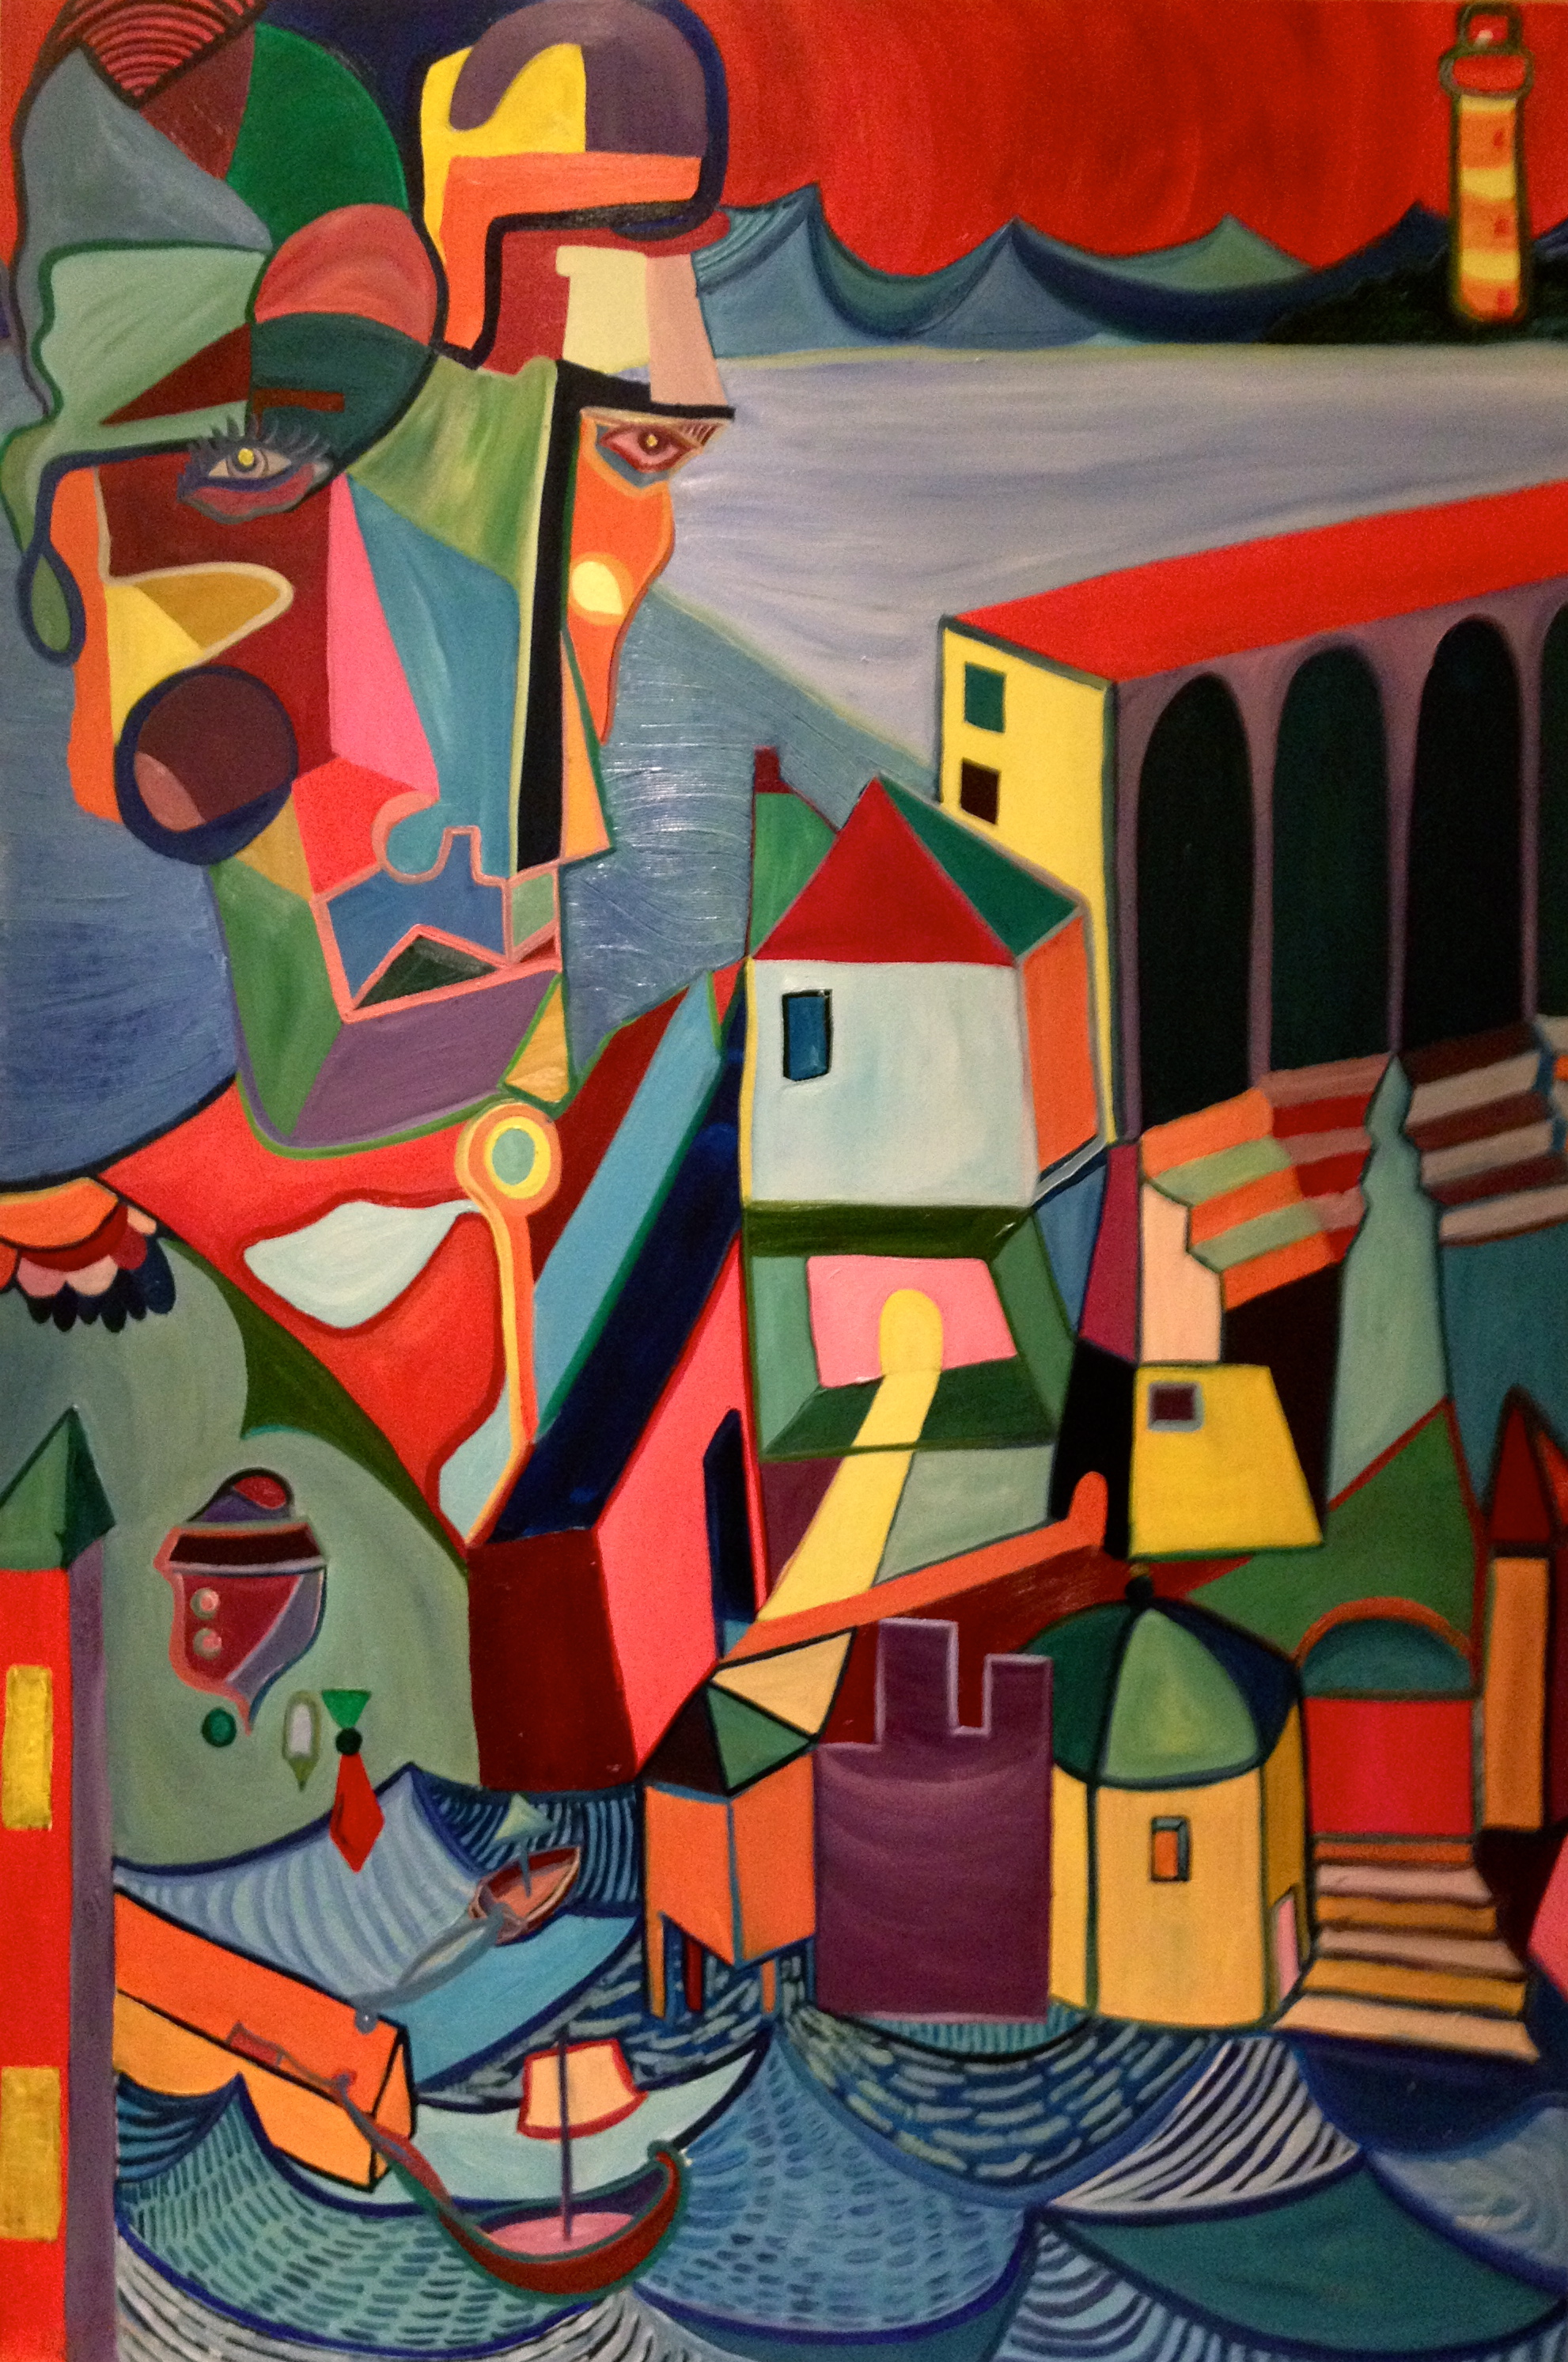 Protector of the City   Oil on Canvas,1,18 m x 1, 73 m / 3.8x5.6 ft